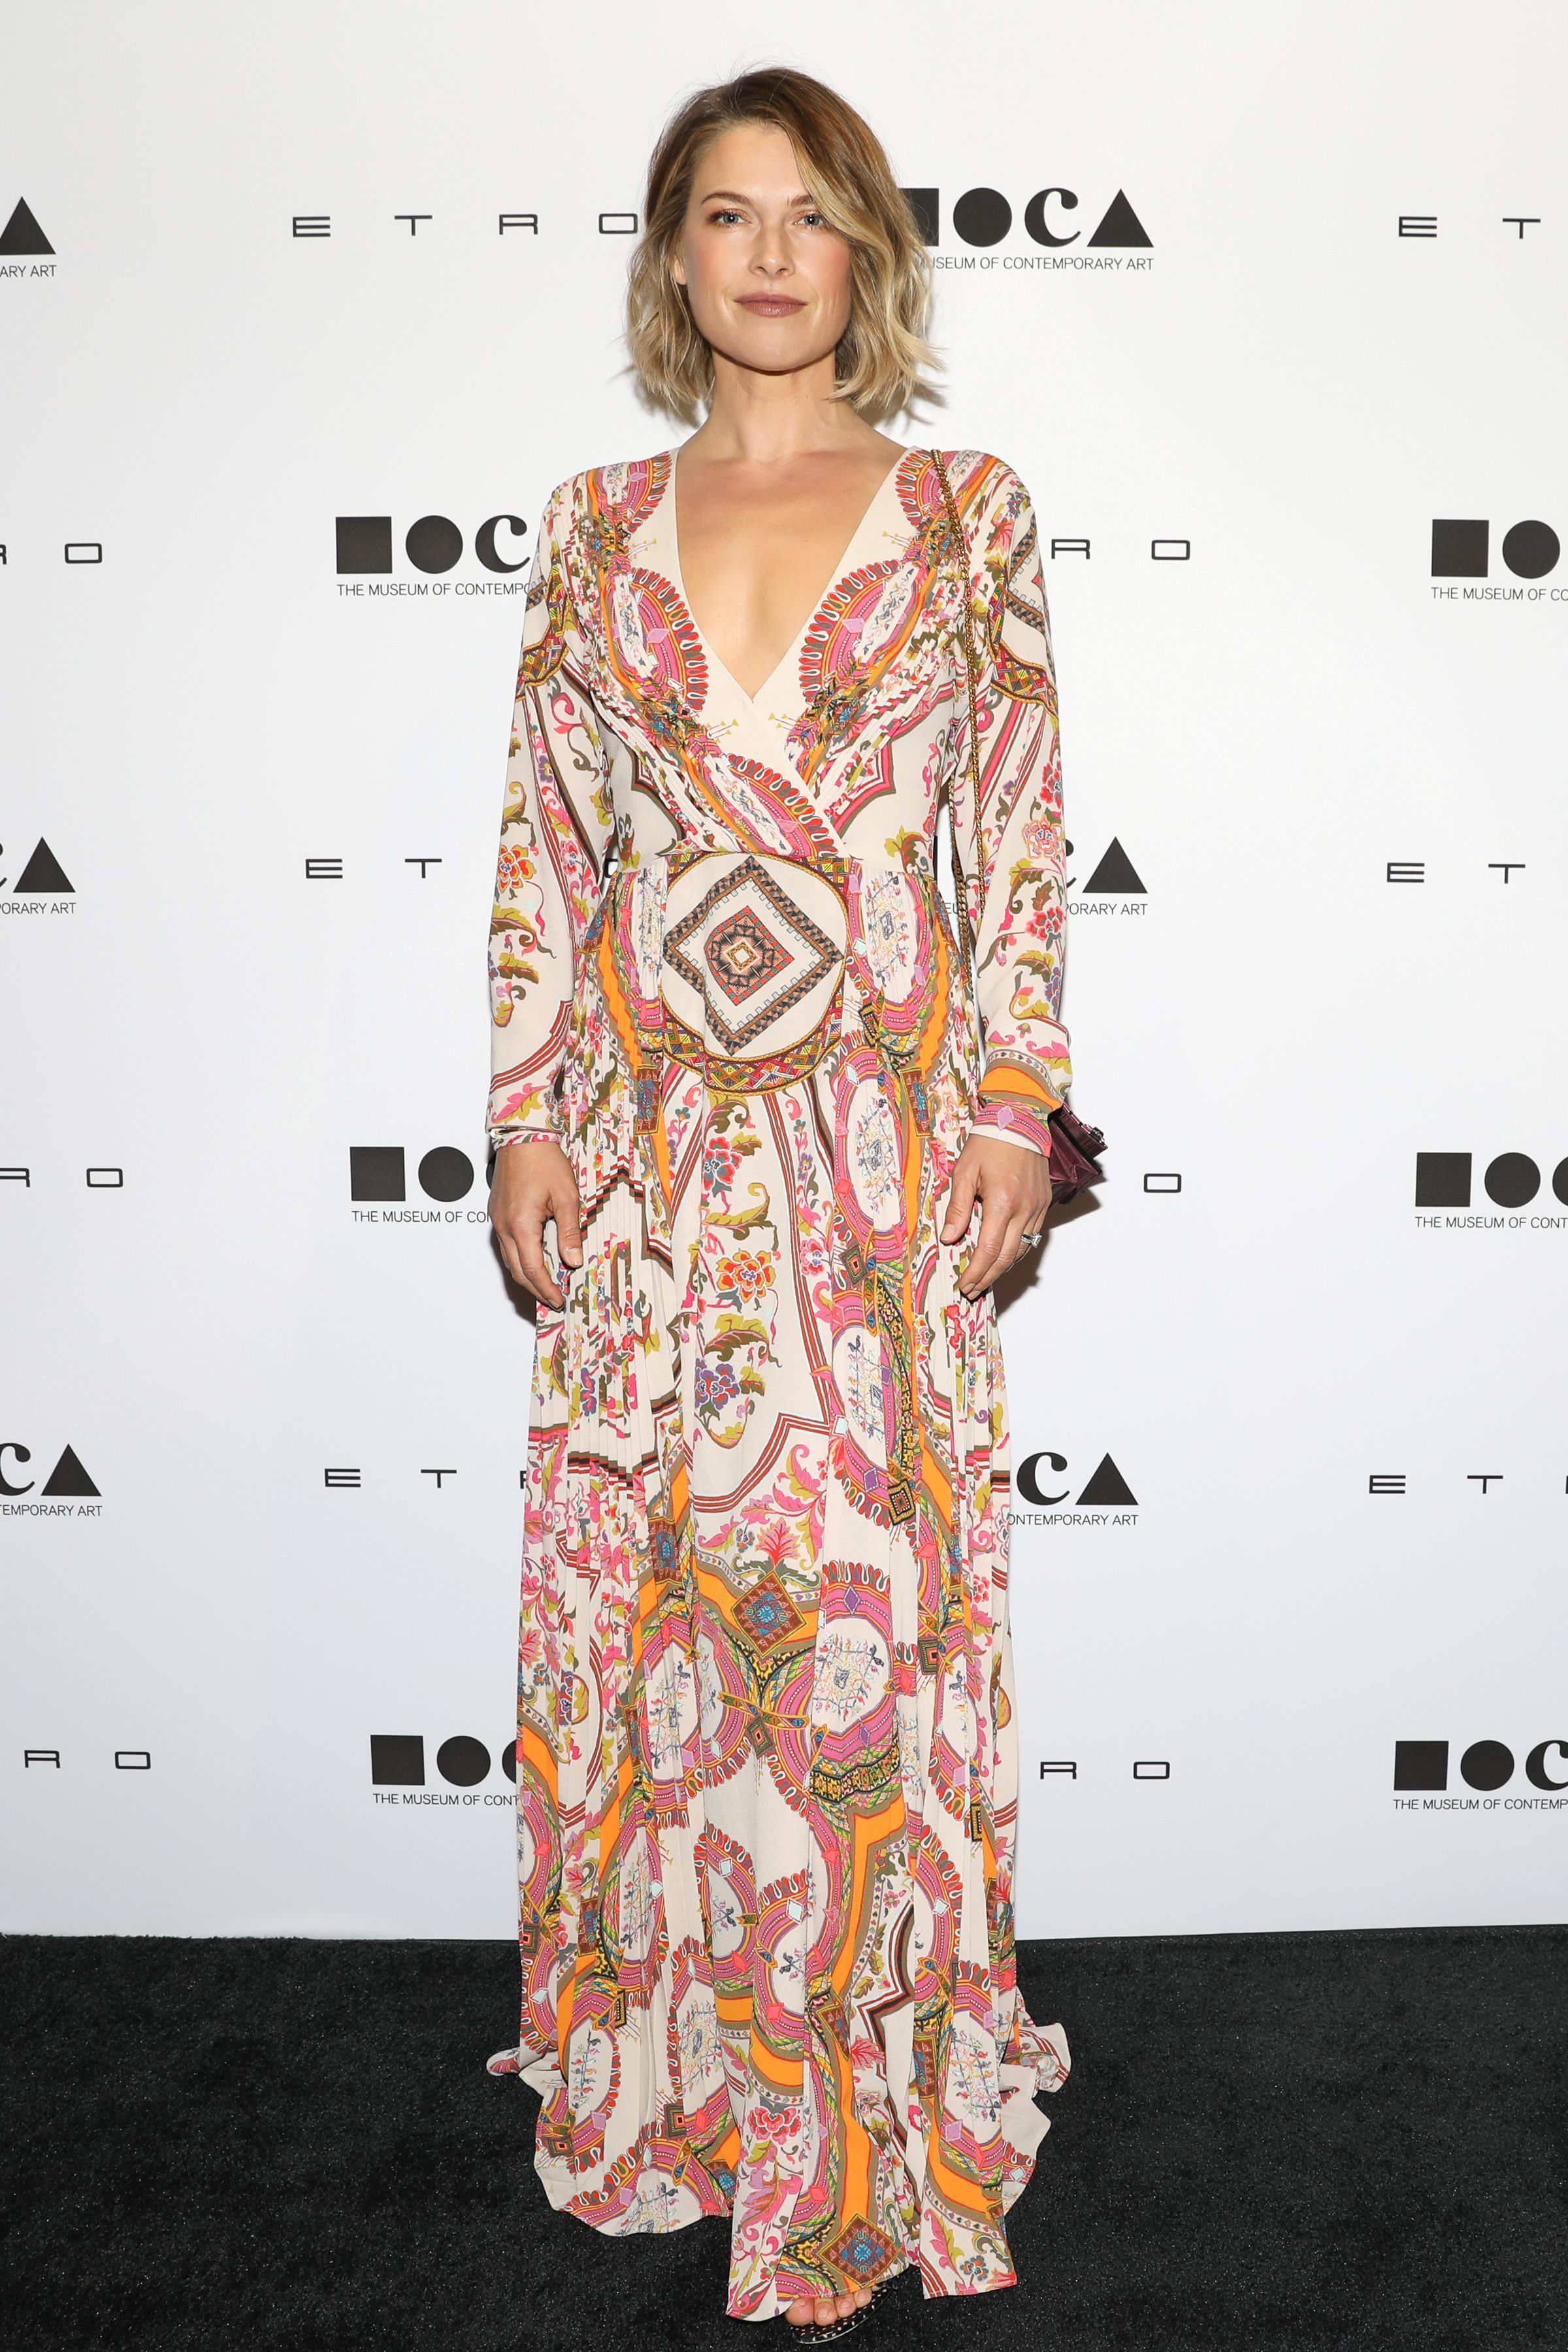 Ali Larter attends the 10th MOCA Distinguished Women in the Arts luncheon in Los Angeles on Nov. 1, 2017.